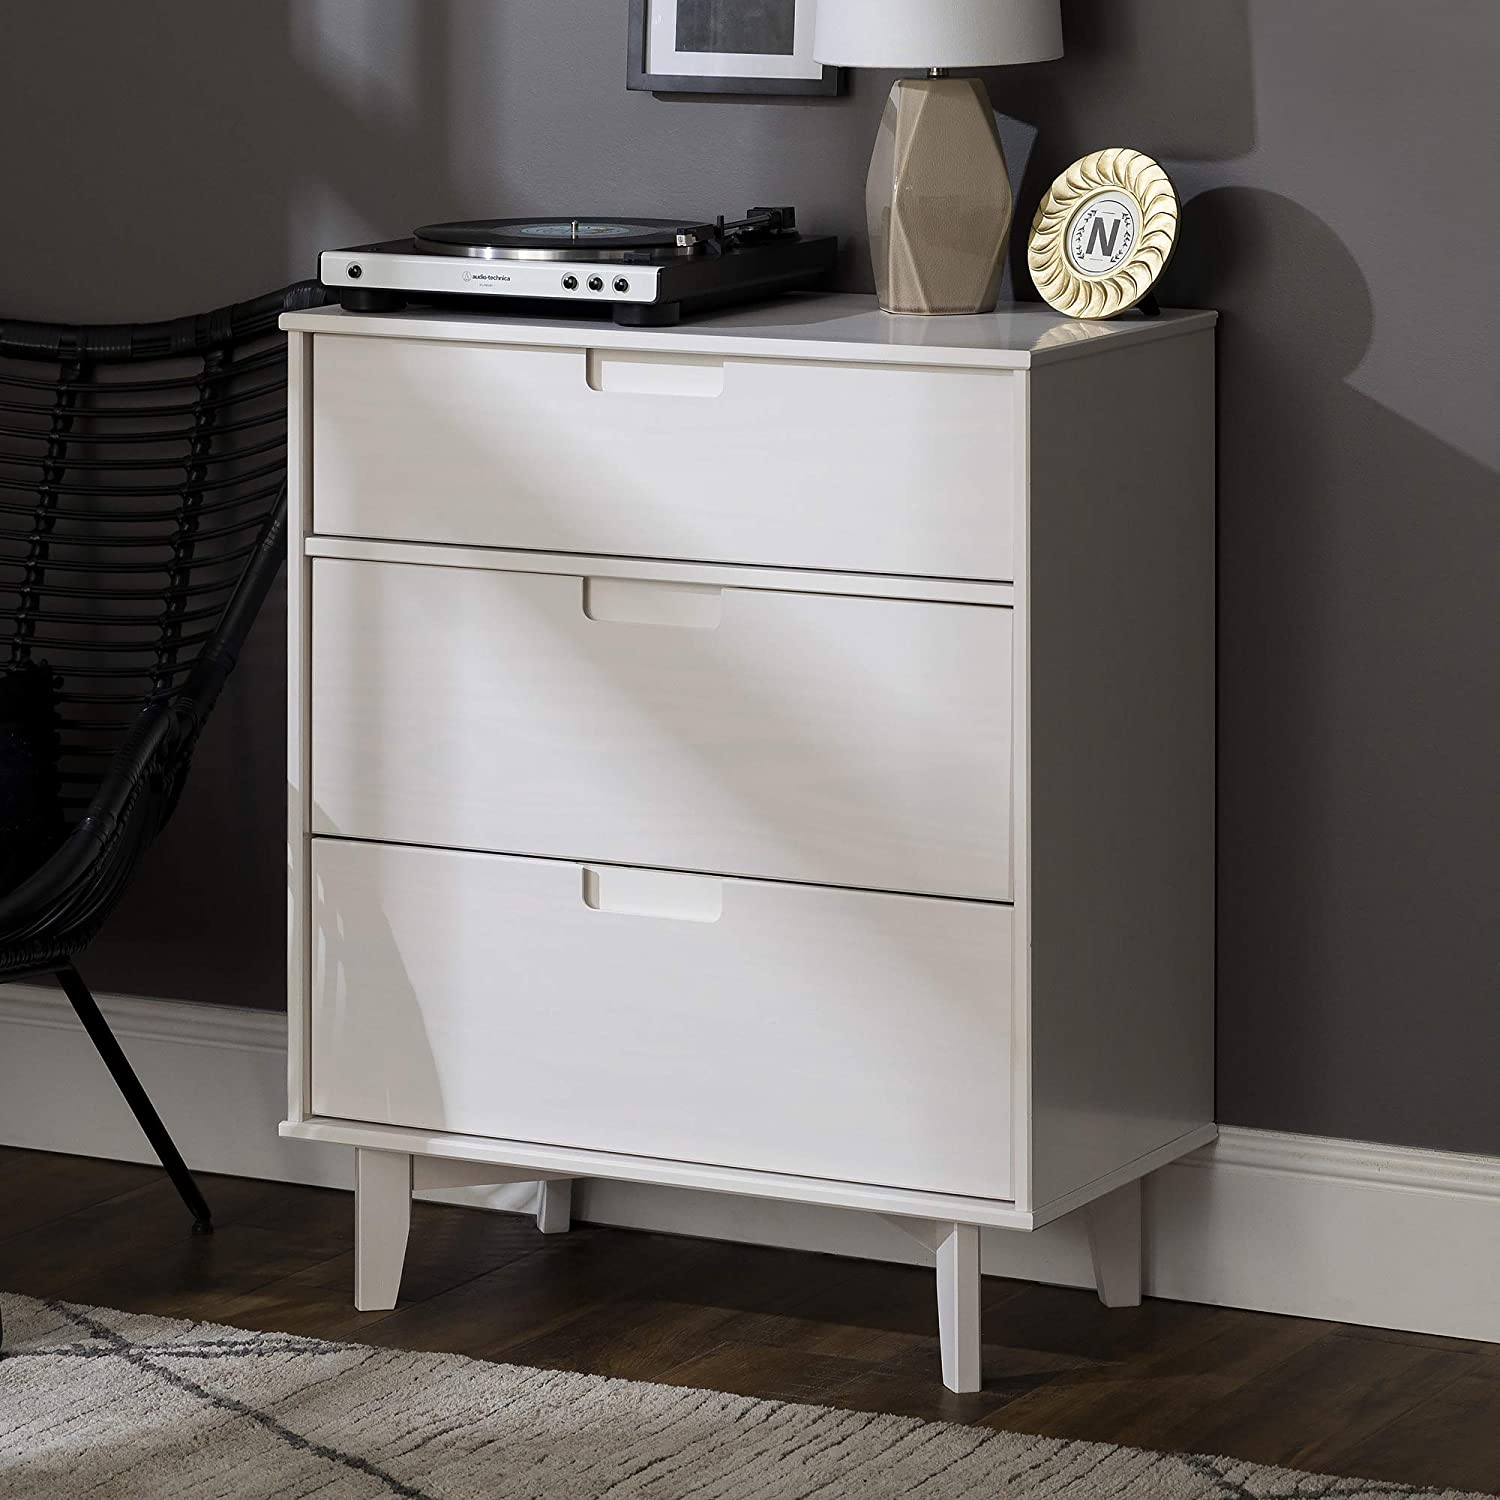 "Enjoy fast, free nationwide shipping!  Family owned and operated, HawkinsWoodshop.com is your one stop shop for affordable furniture.  Shop HawkinsWoodshop.com for solid wood & metal modern, traditional, contemporary, industrial, custom, rustic, and farmhouse furniture including our Pine Wood 3-DraWalker Edisonr Groove Handle Vertical Dresser, 36"" in White."